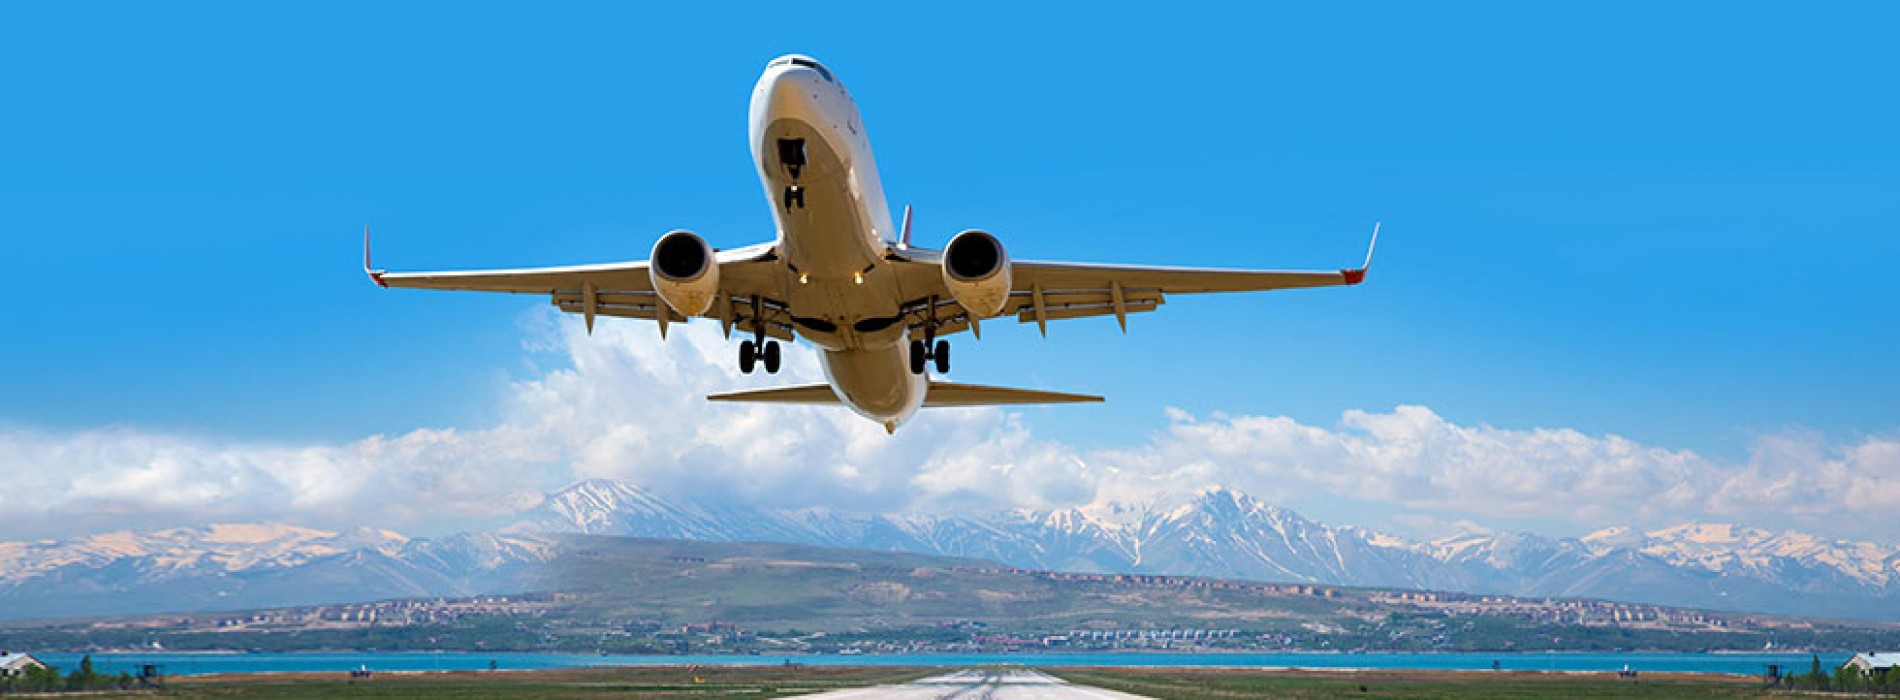 Narendra Modi government providing growth-centric environment for aviation to drive secular growth says Morgan Stanley